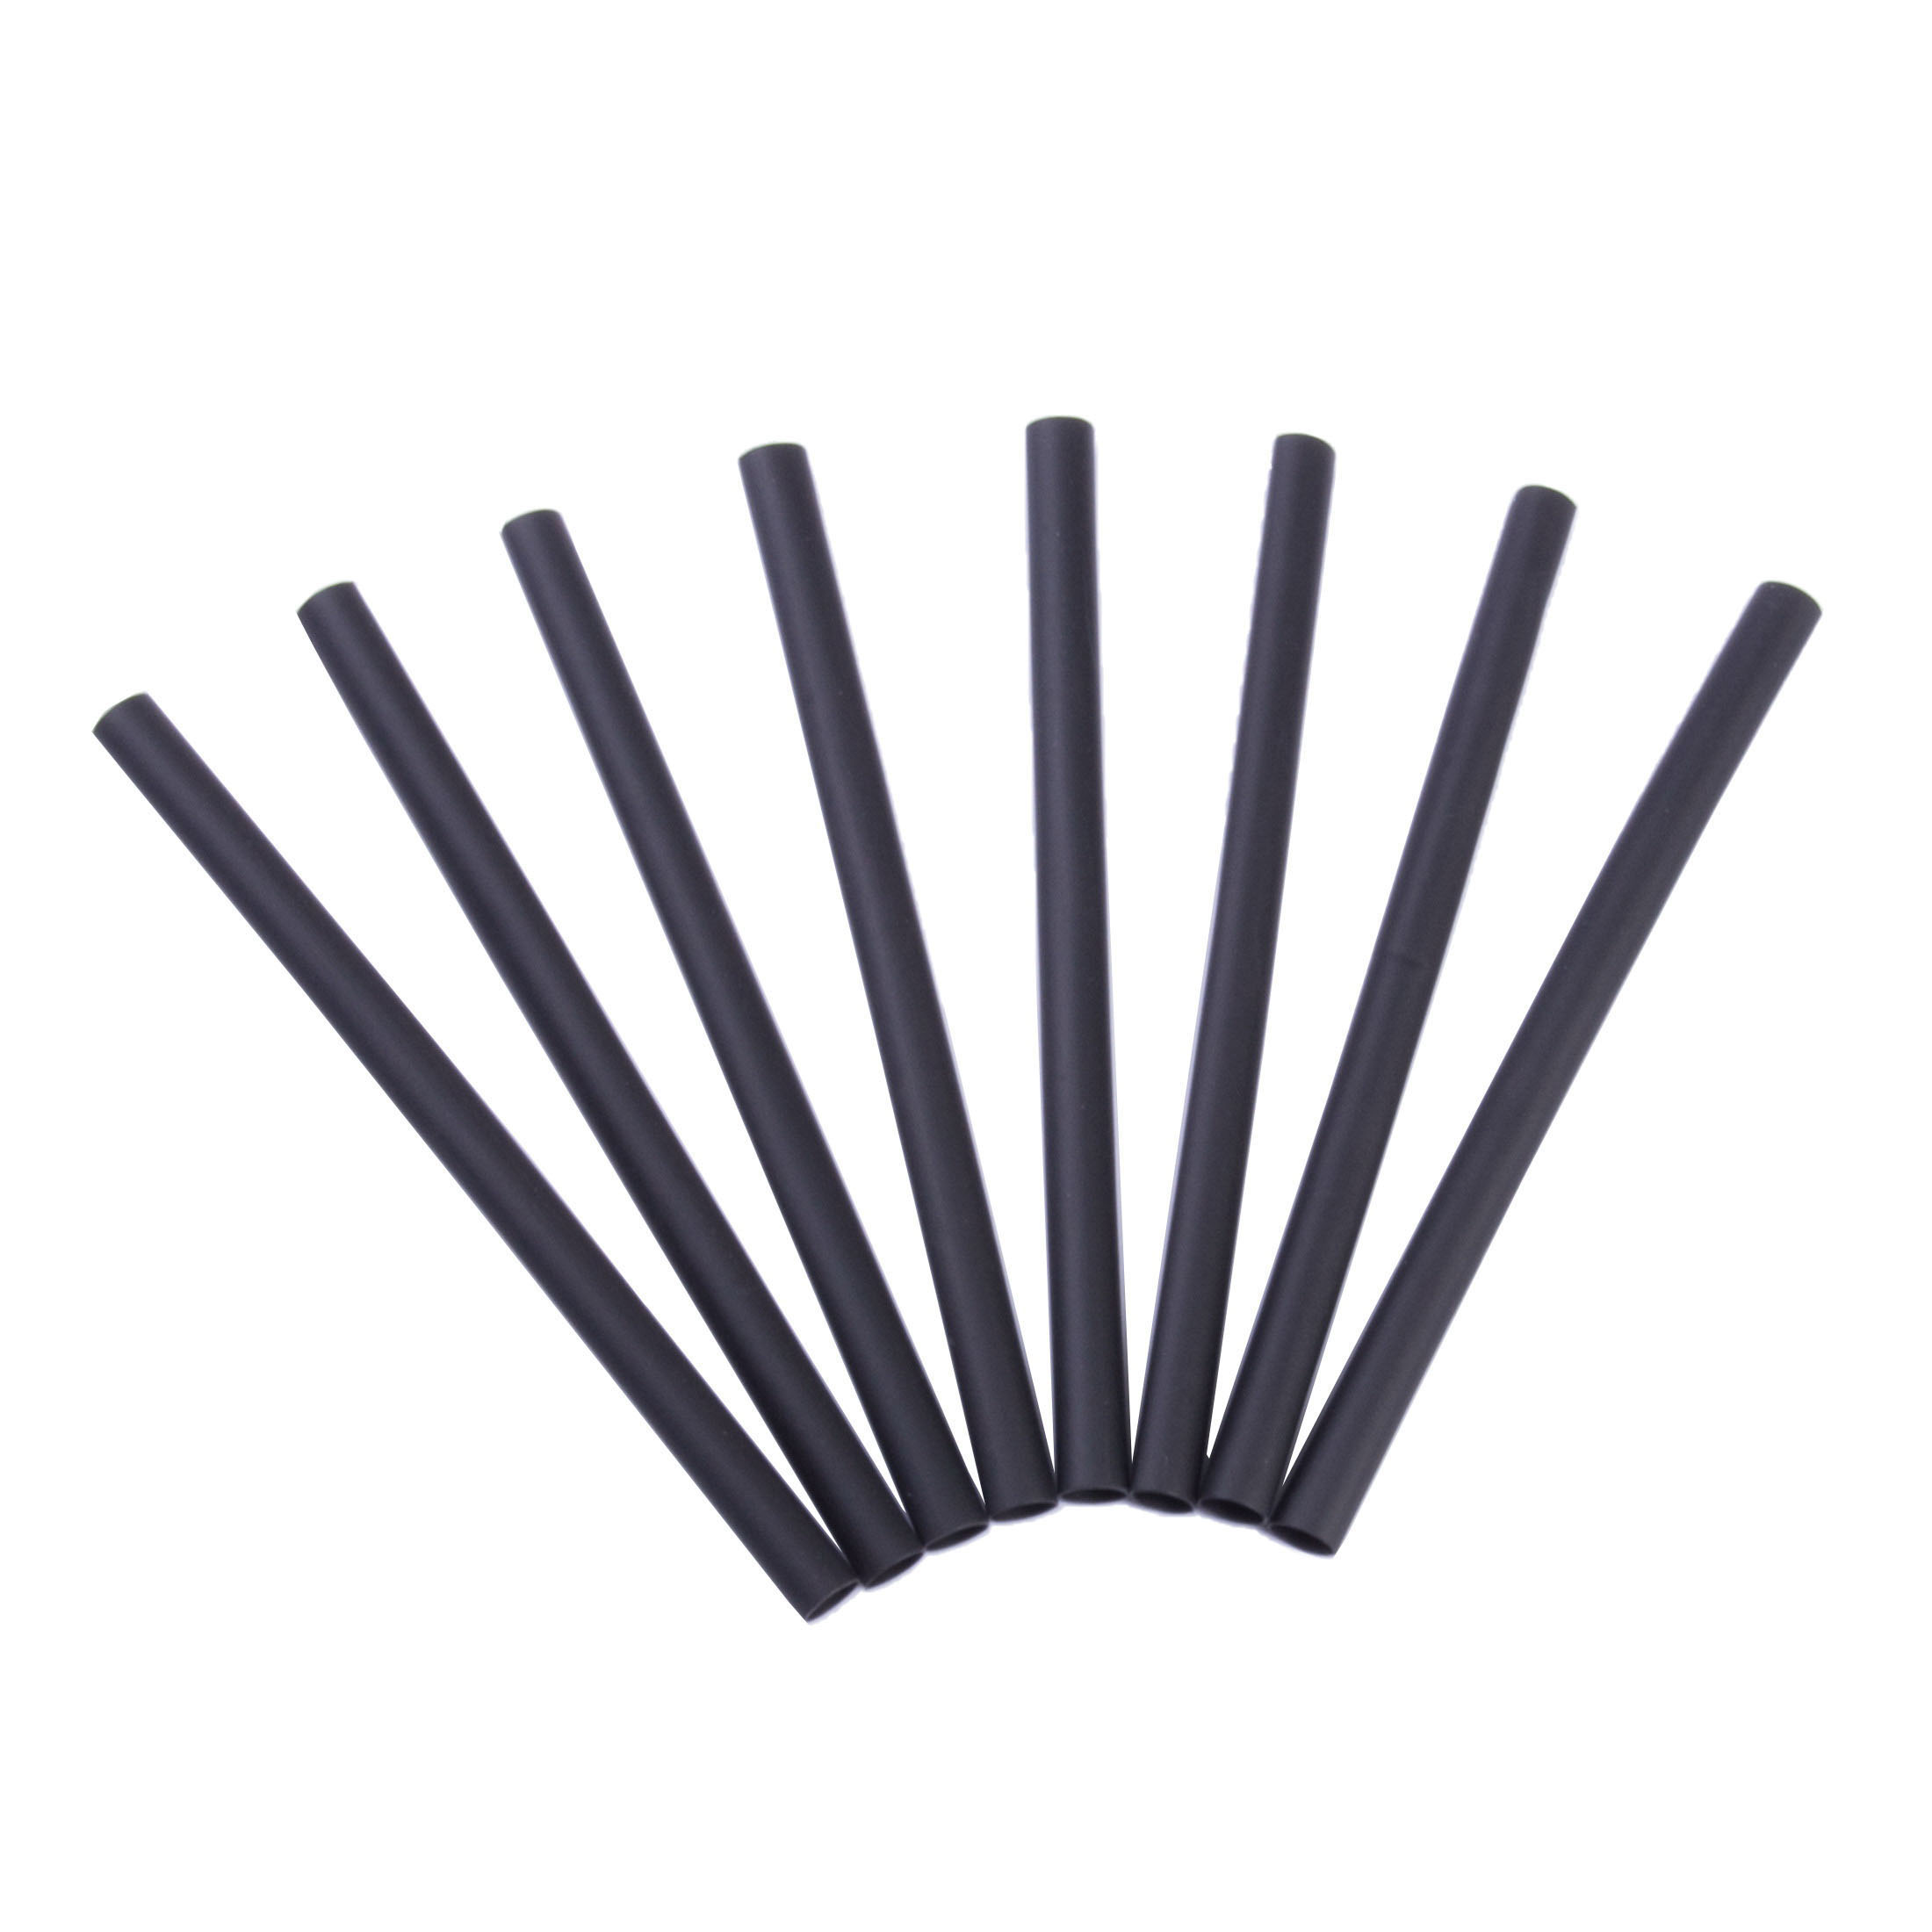 HEAT SHRINK 3/16X4 BLK 8 /PK